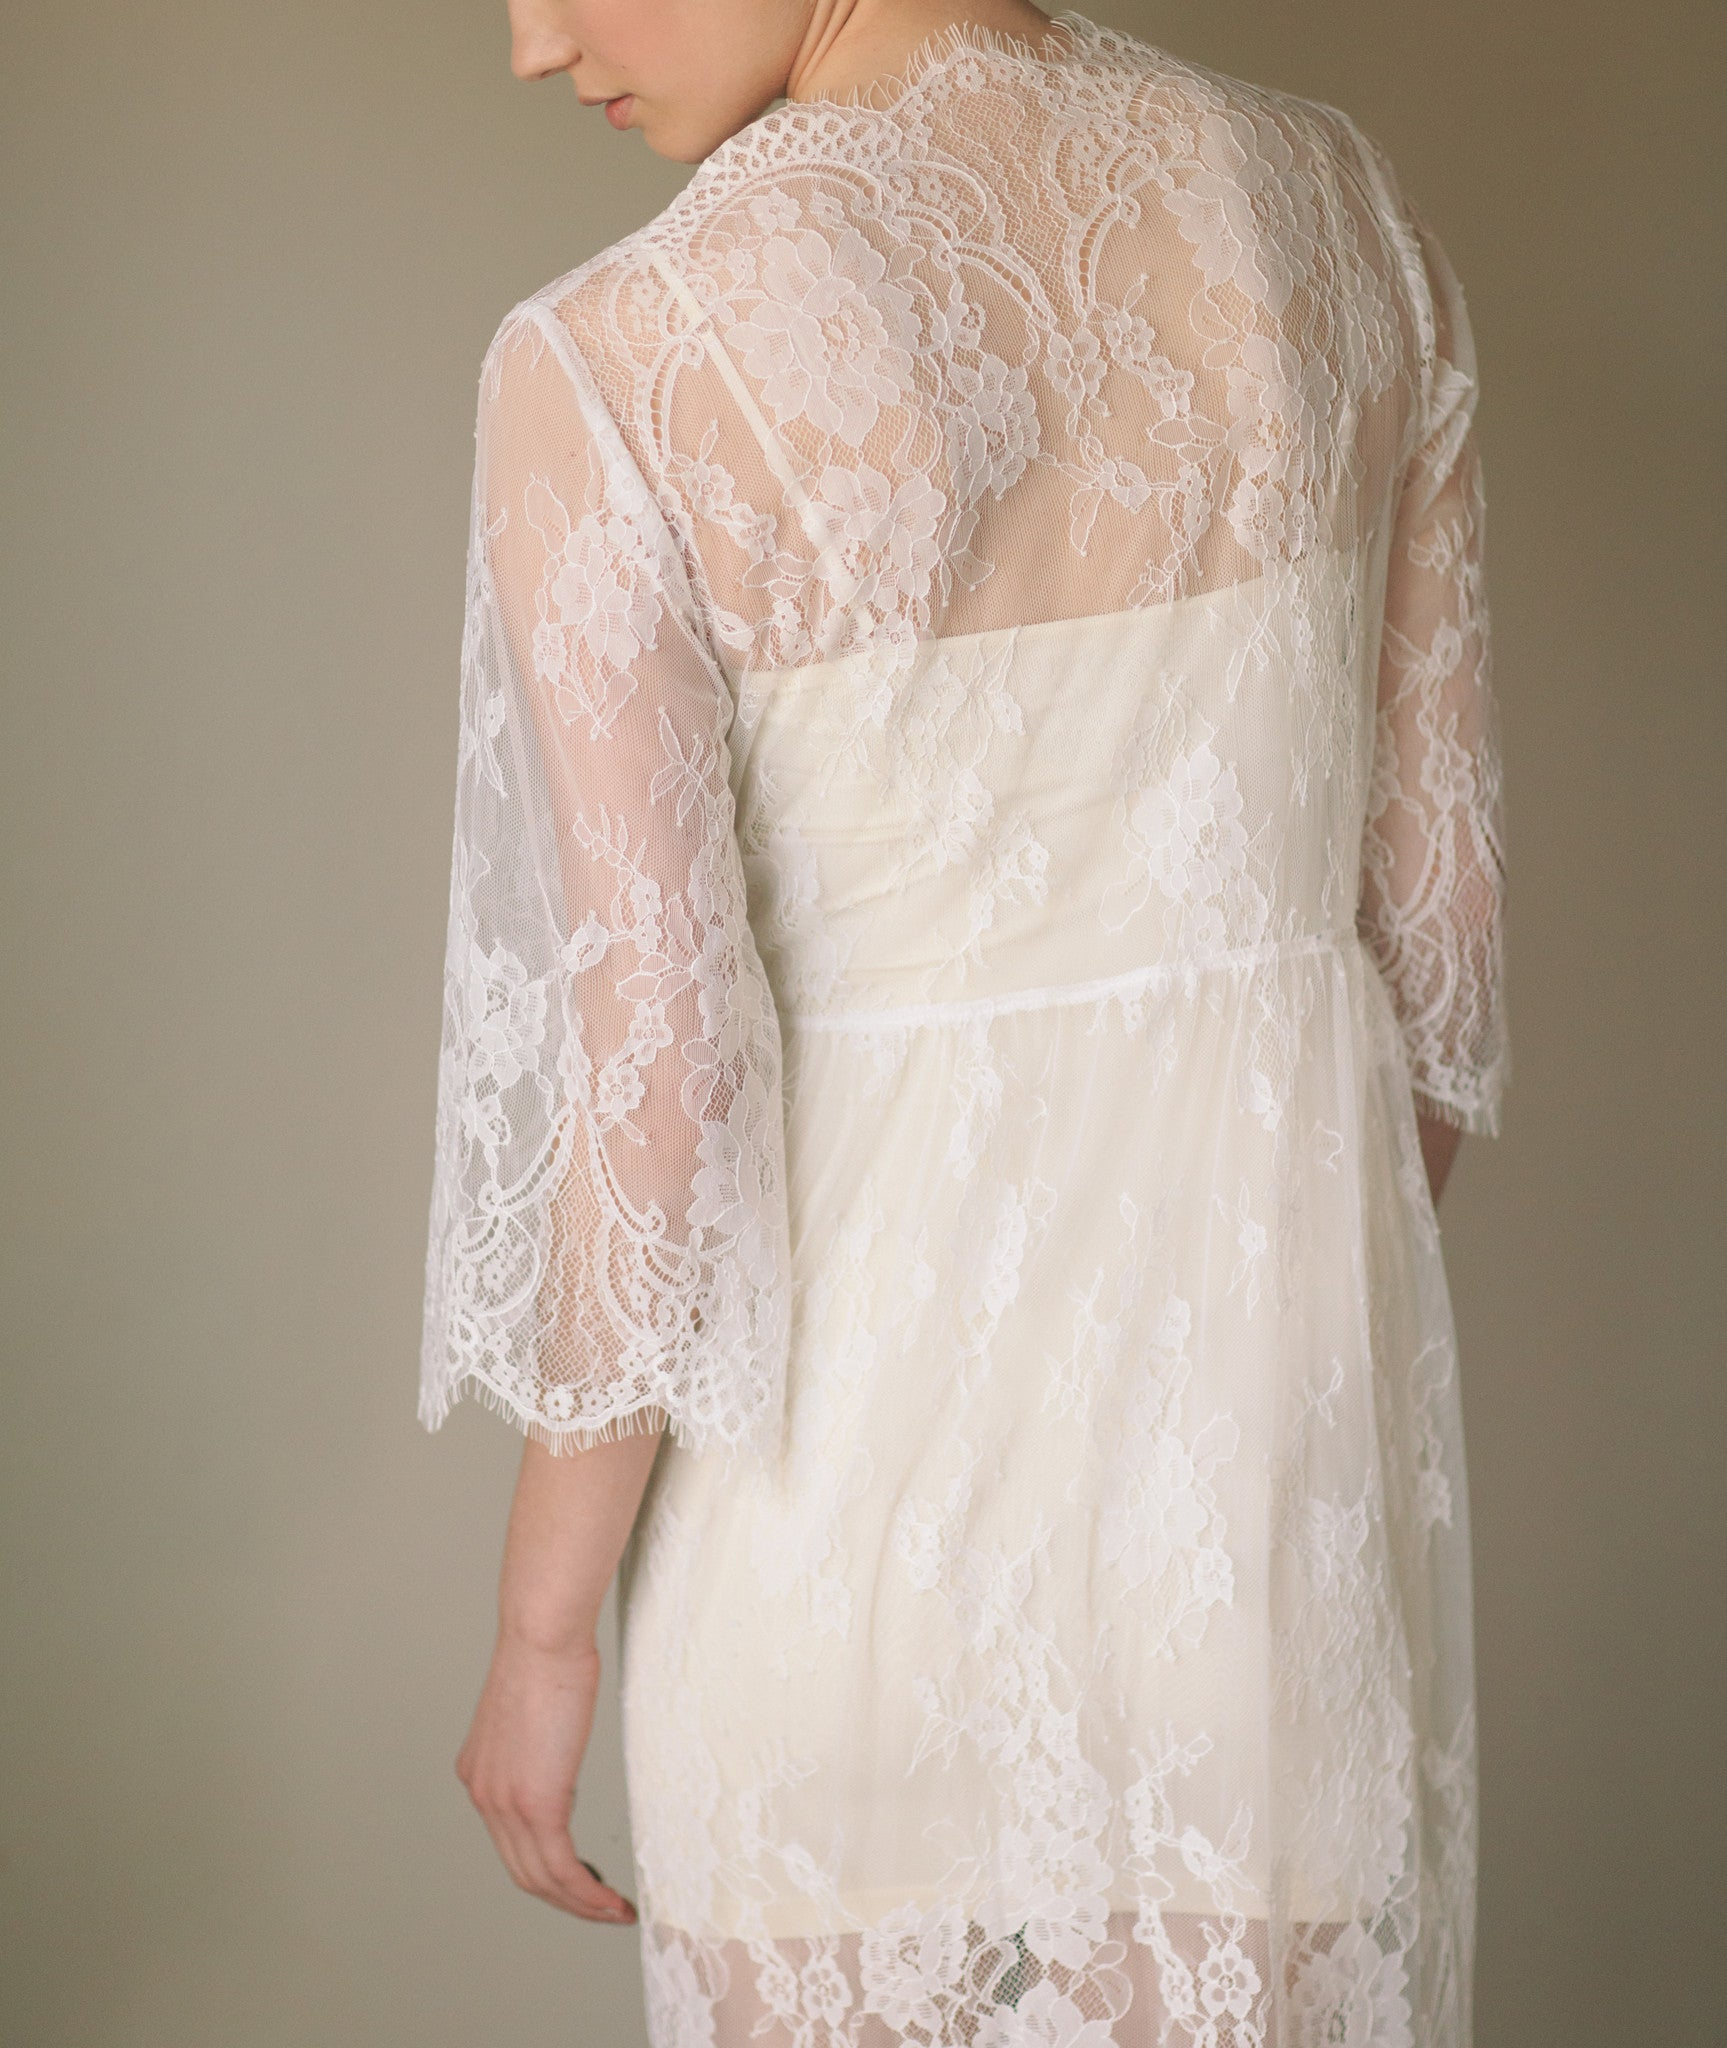 Bridal Lace Robe Kimono (#Isabella) - Dream Dresses by P.M.N  - 6